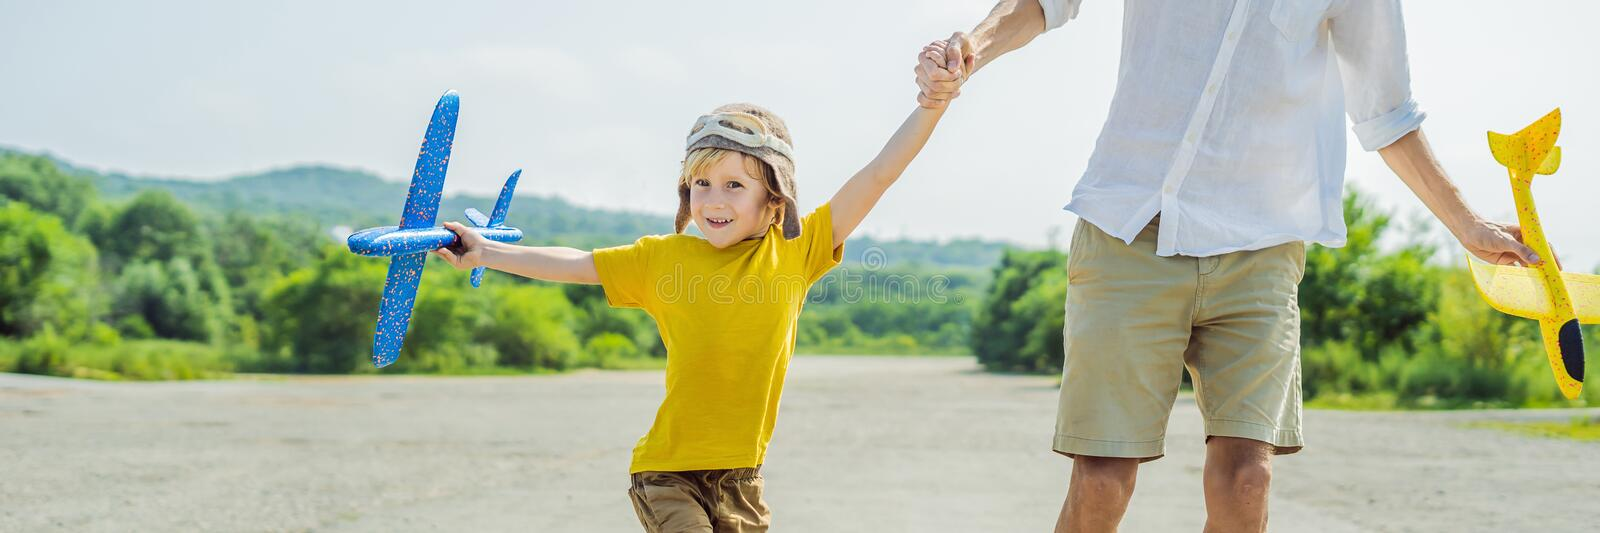 Happy father and son playing with toy airplane against old runway background. Traveling with kids concept BANNER, LONG FORMAT. Happy father and son playing with royalty free stock images